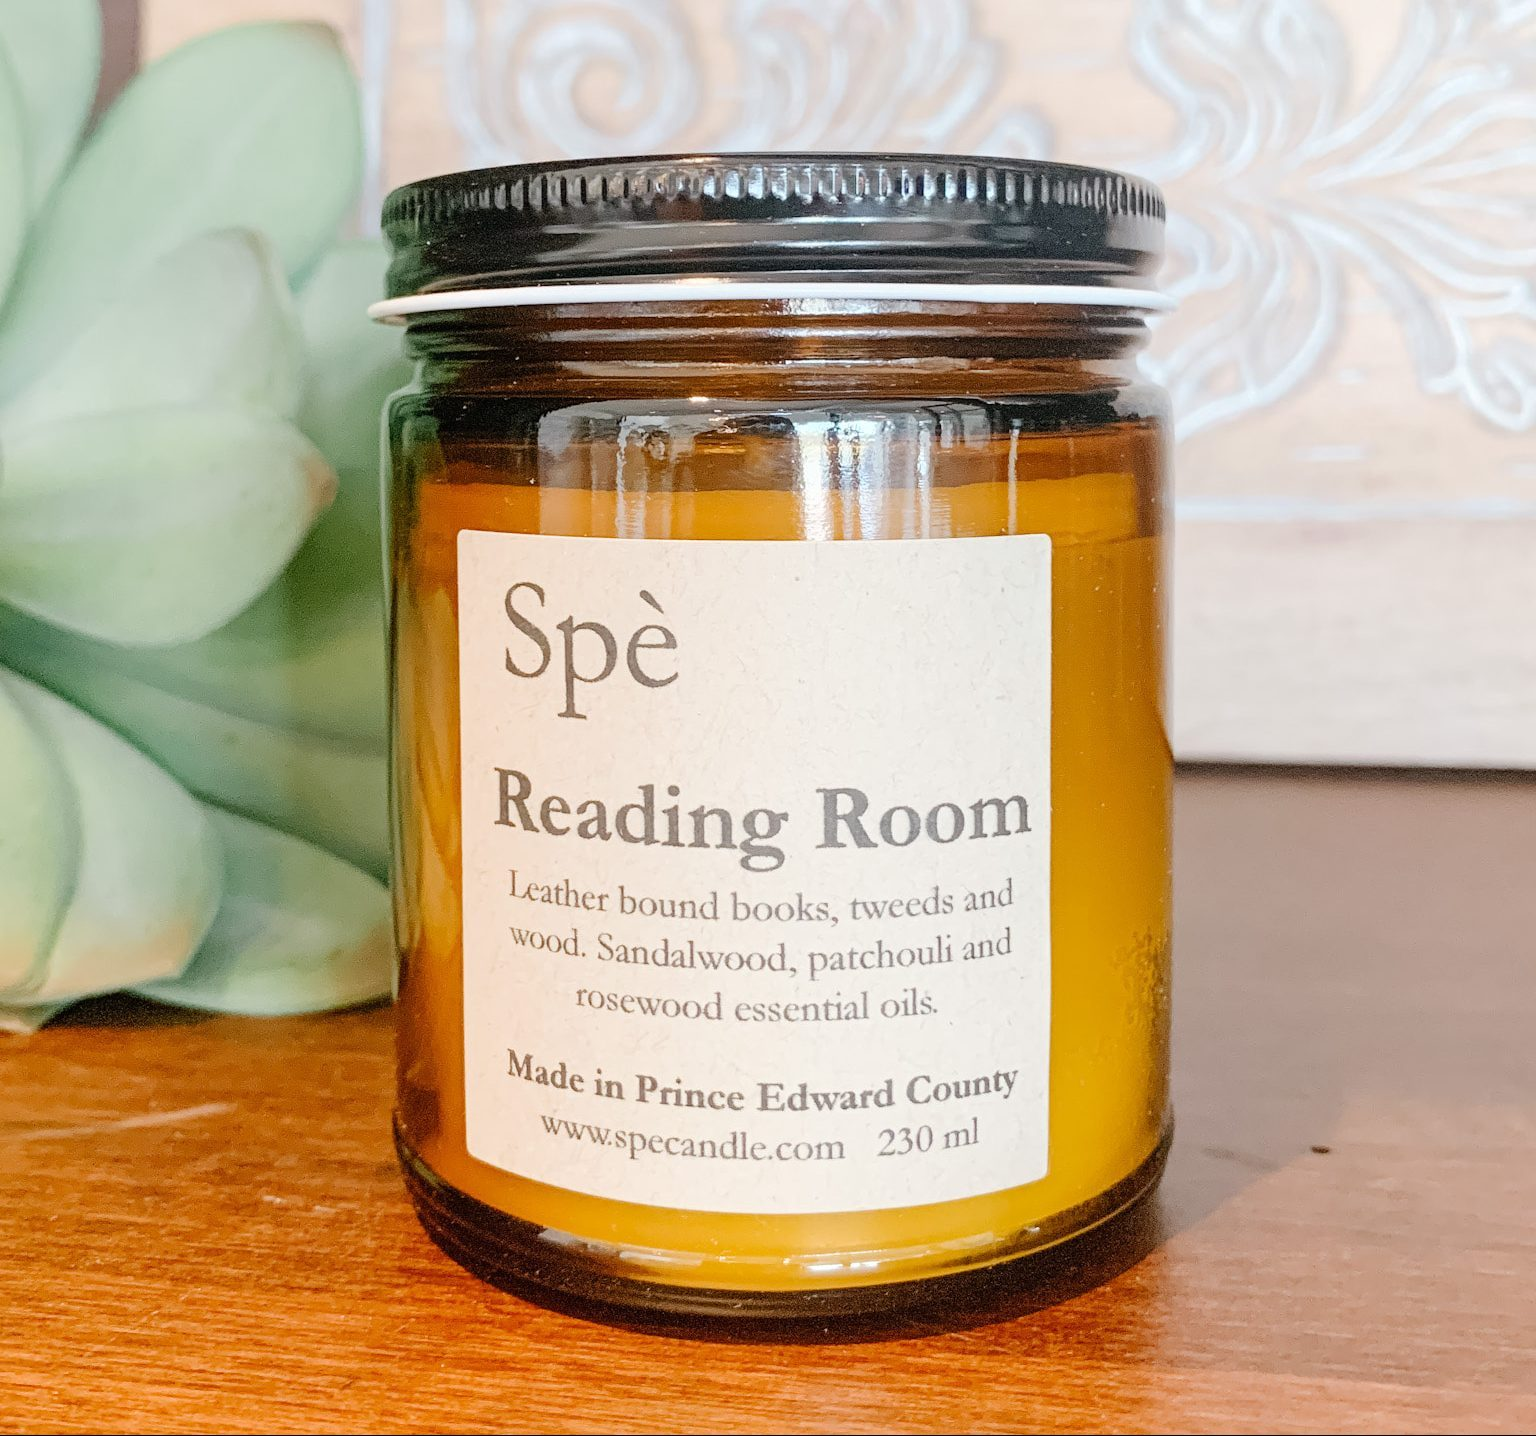 Luxury candle, soy candle, natural ingredients, Scented candle of mahogany and leather, masculine candle scent